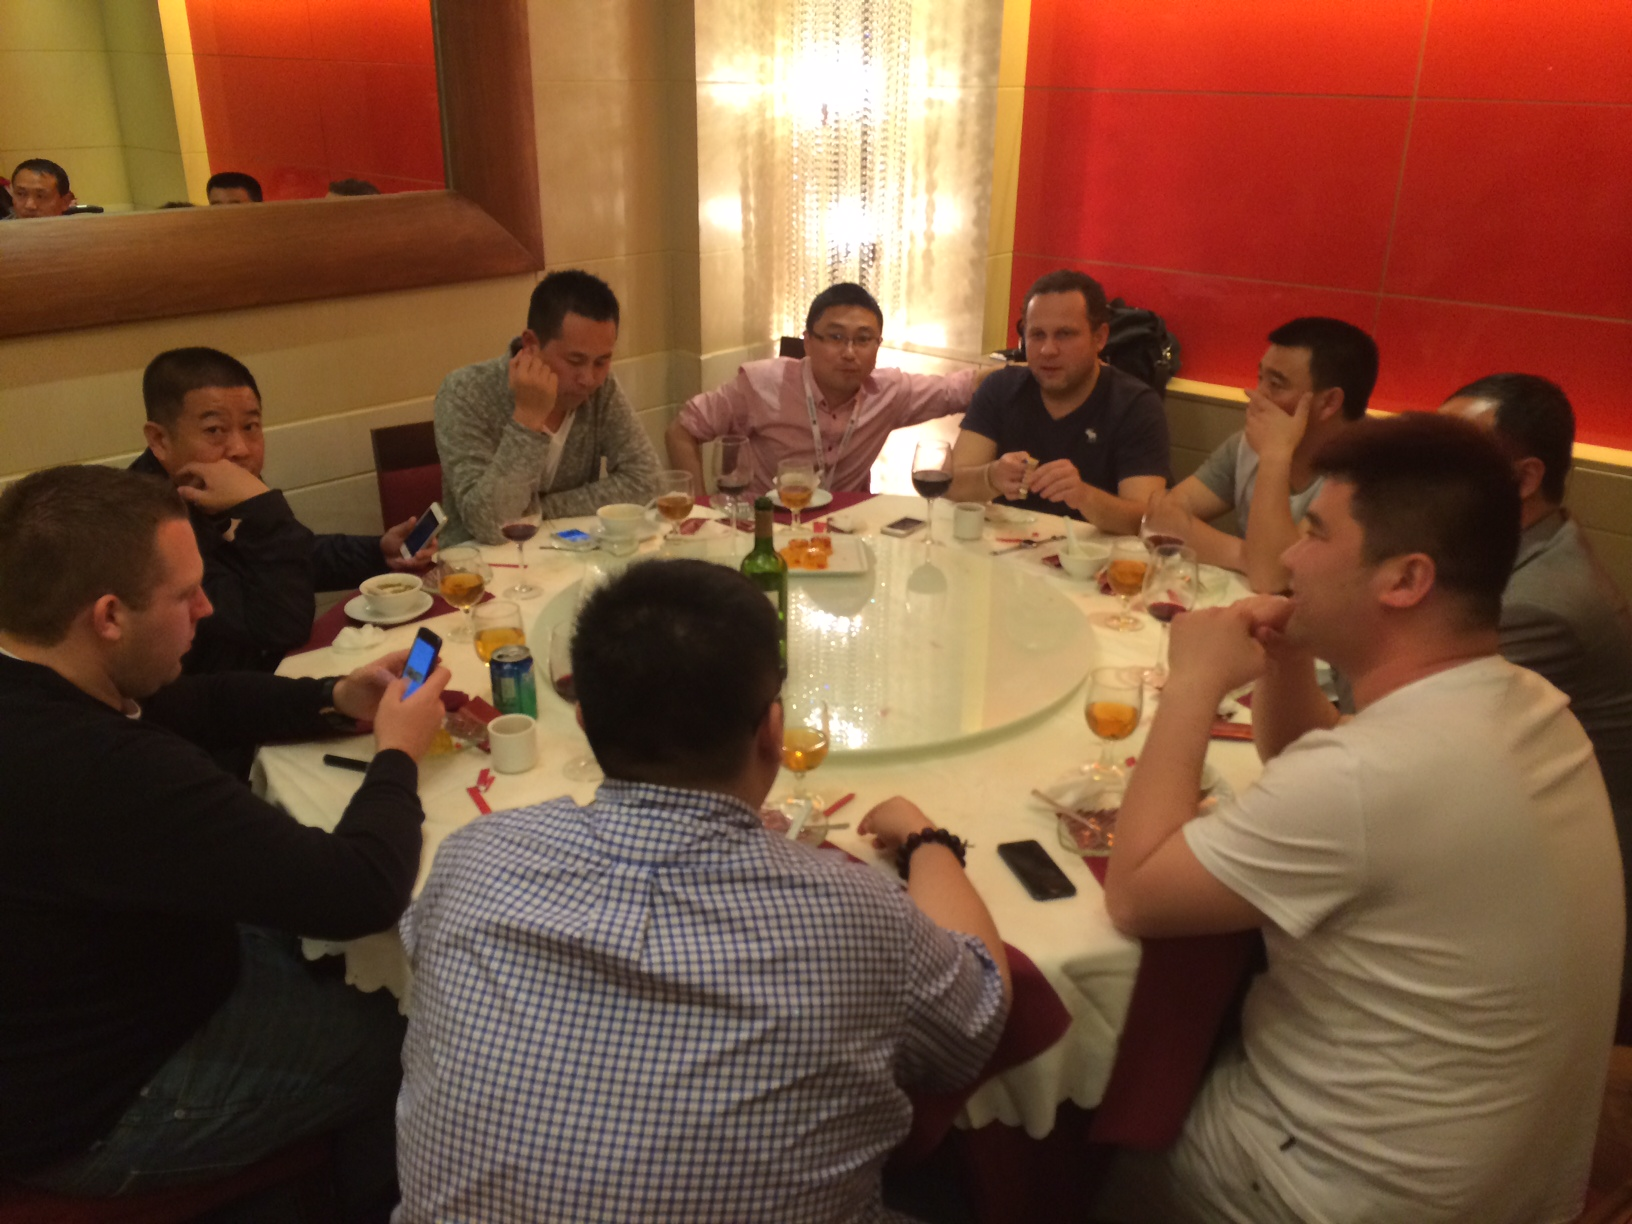 NW_team_dinner_at_HKG_fair_April_2014.JPG